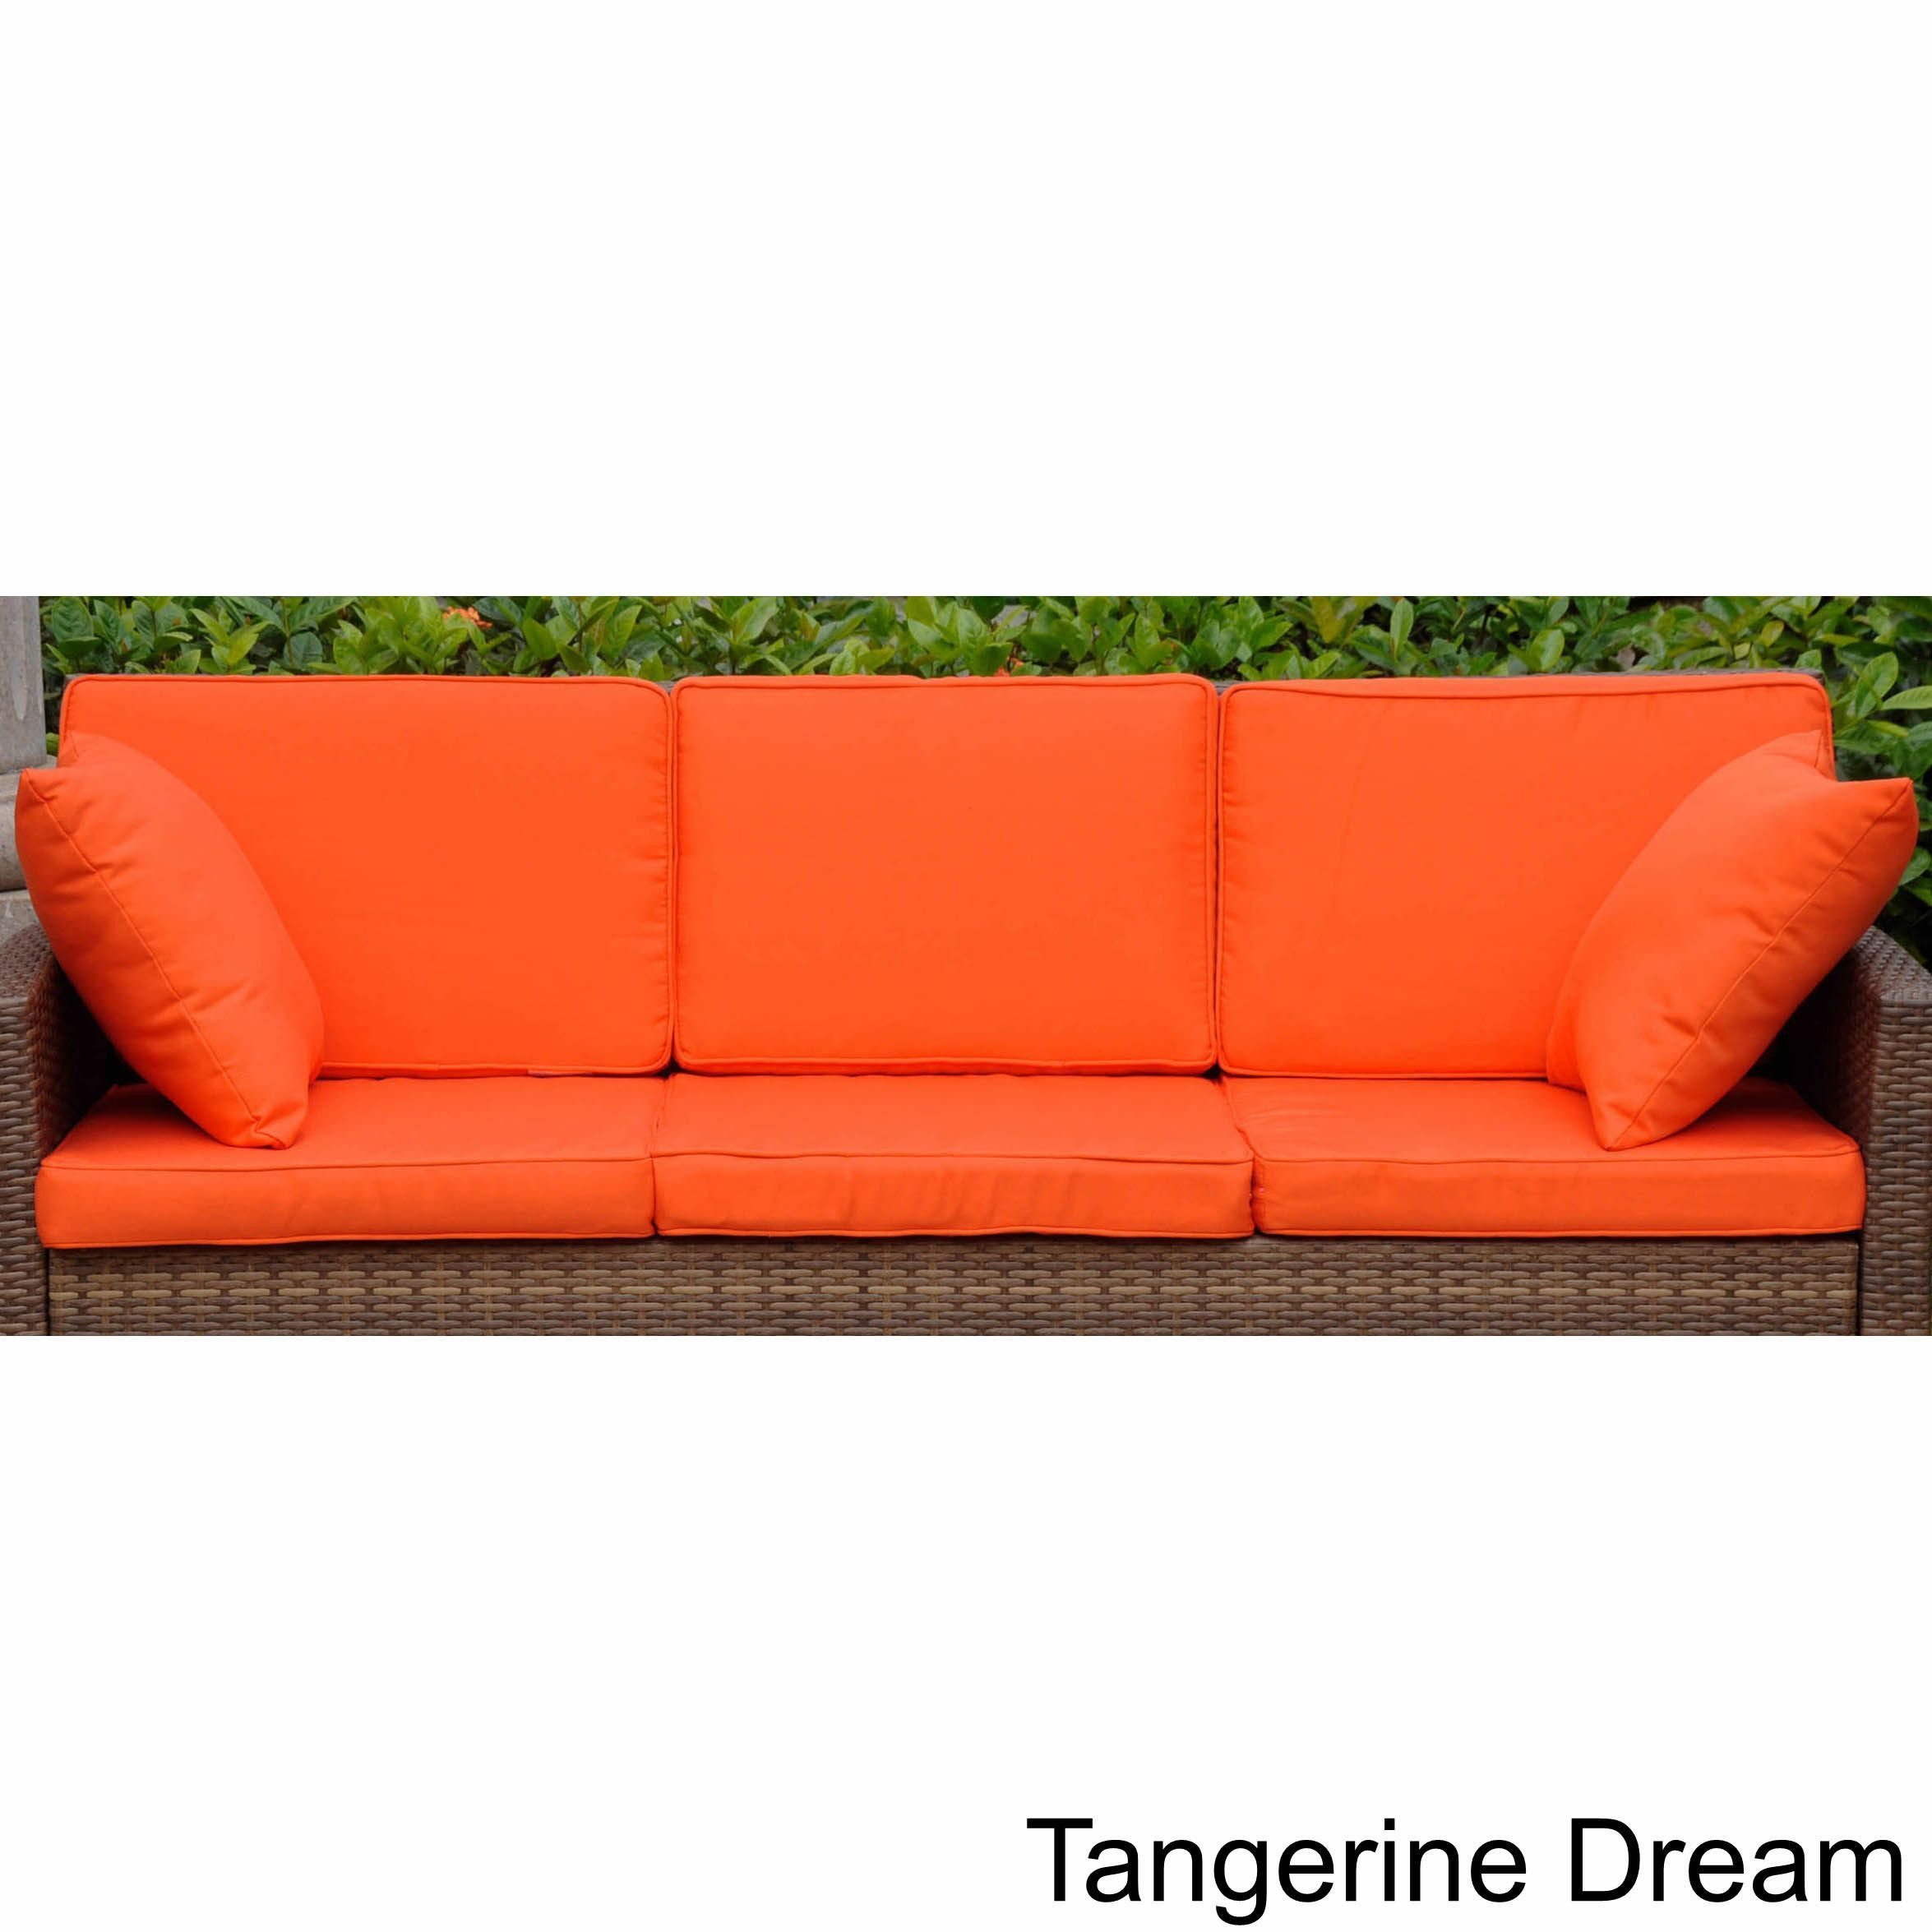 furniture full lounge for sectional sets outdoor using size cushion blue teal lawn sofa sofas rattan garden of pillows replacement wicker round deck clearance decorating patio pads lovely loveseat cushions couch seat awesome chair outside settee